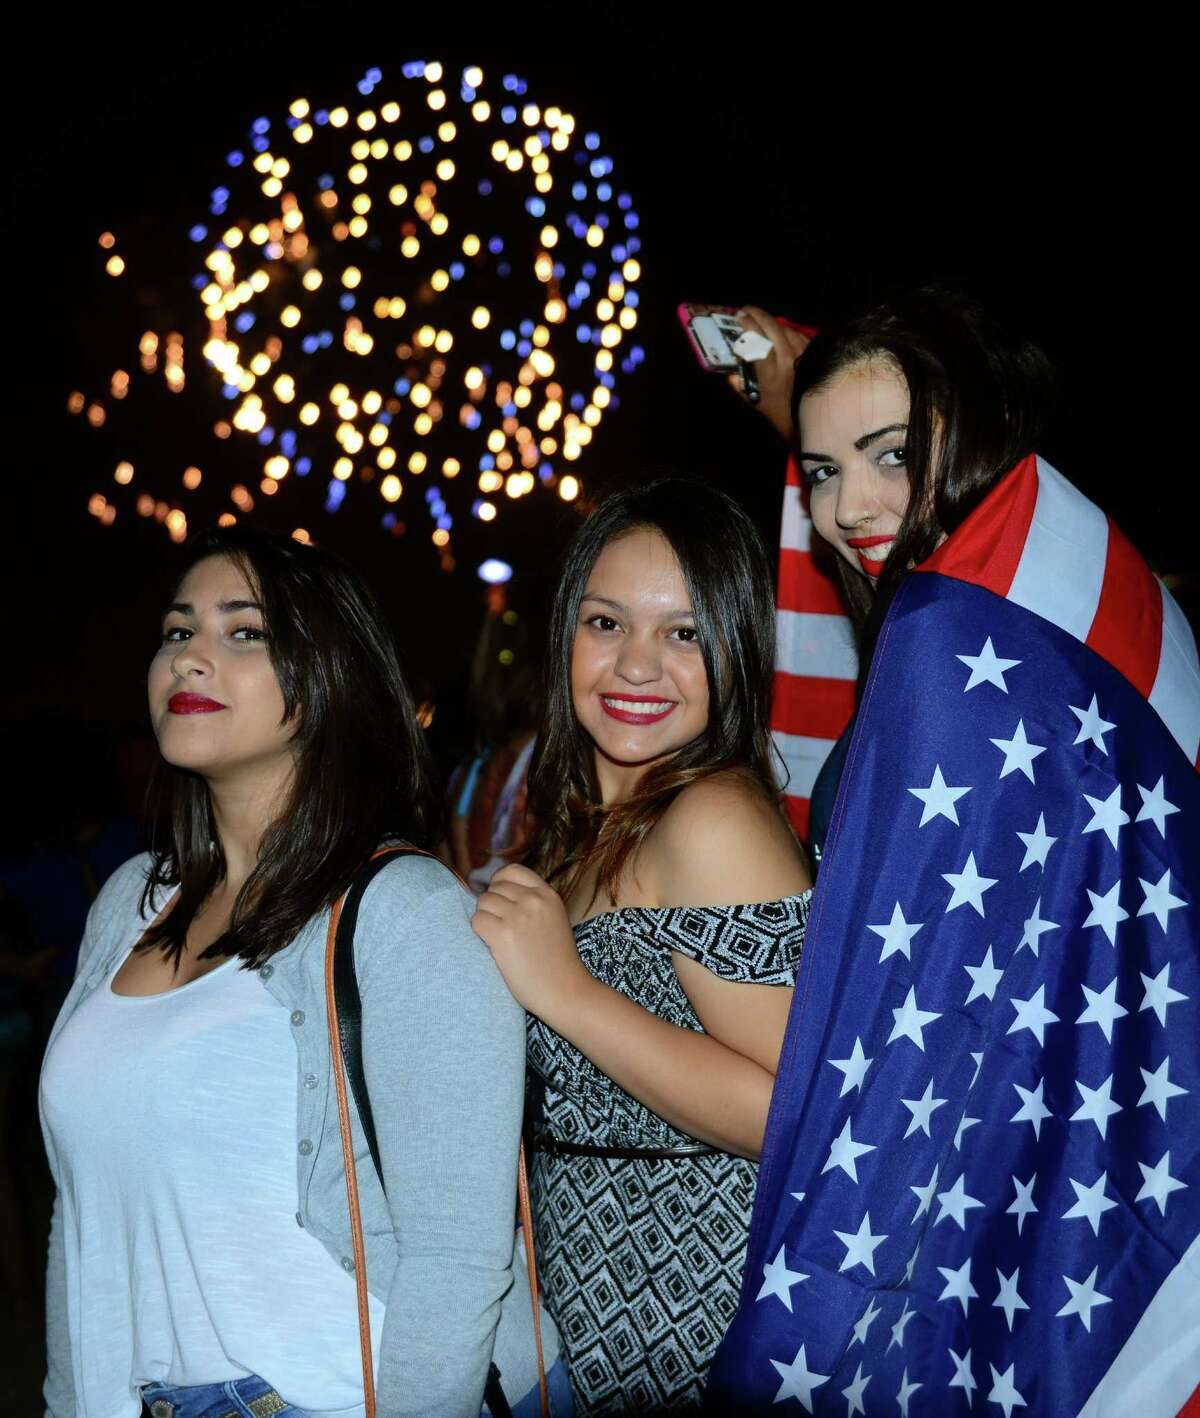 Darien residents Rafaella Gaiao, left, Daiane Cristina Marques dos Santos, center, and Camila Petrovich, pose for a photo during the holiday fireworks show at Penfield and Jennings Beaches in Fairfield, Conn., on Friday July 3, 2015.